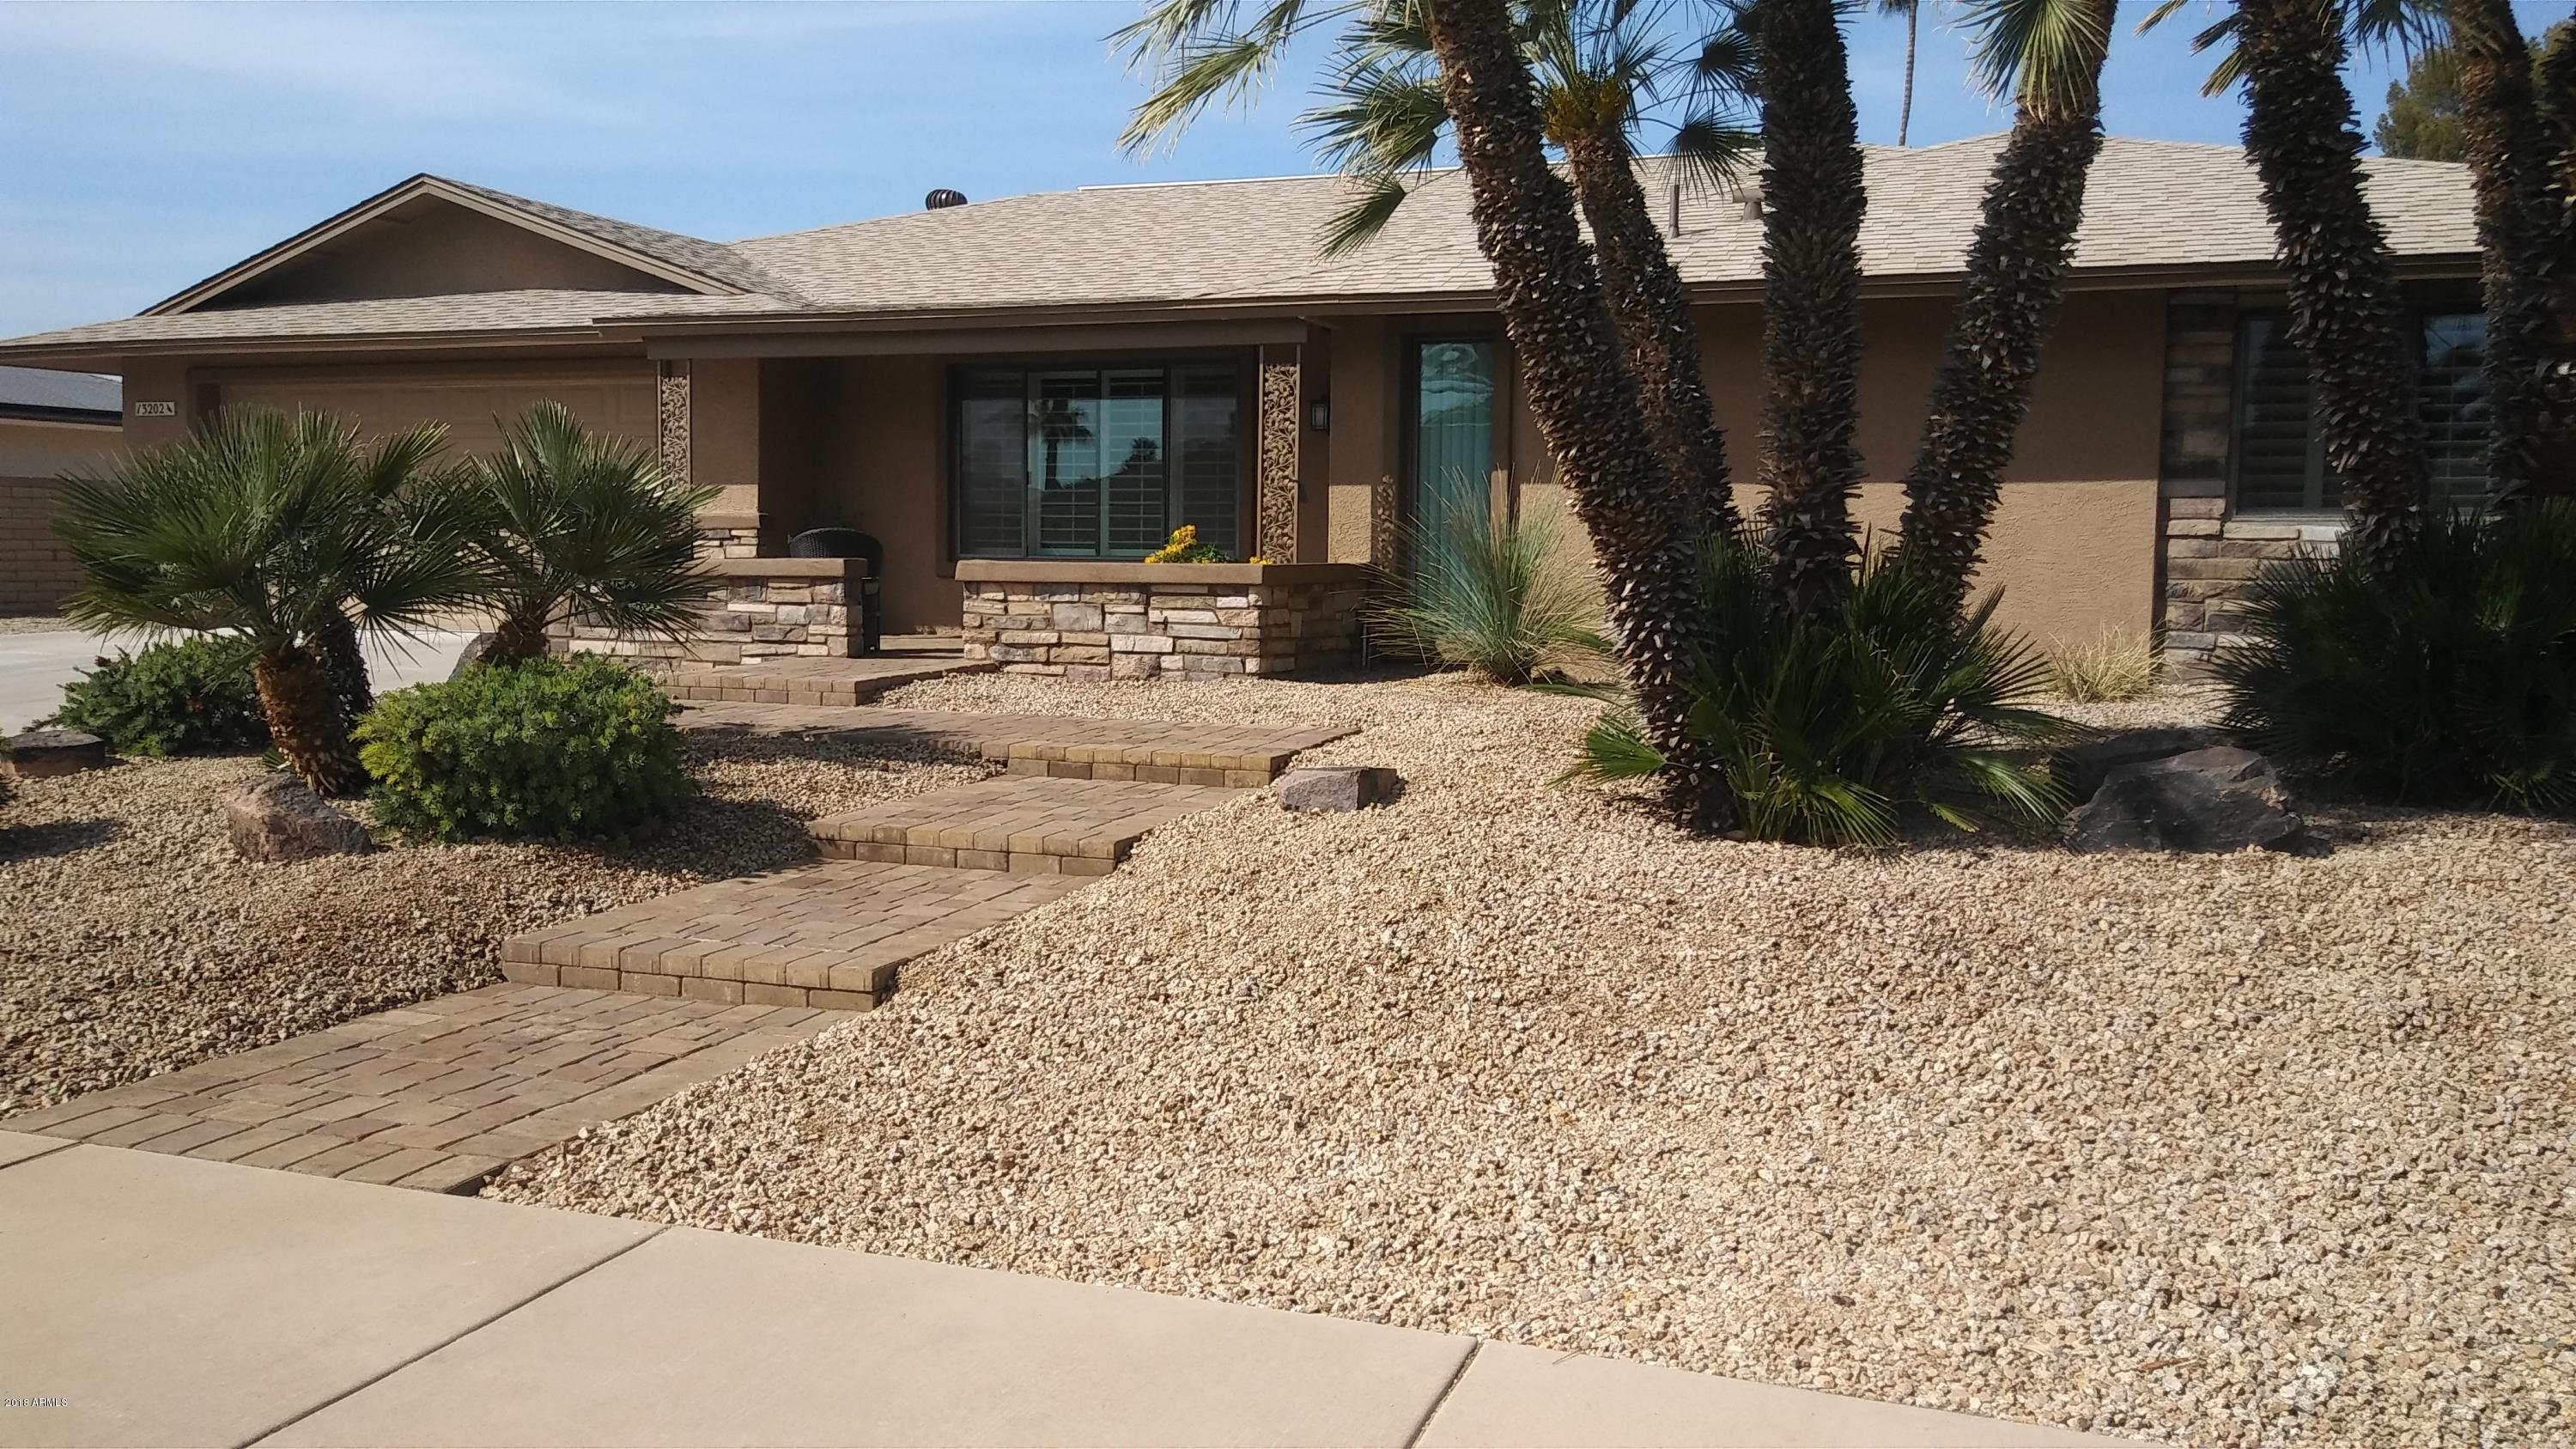 13202 W BEARDSLEY ROAD, SUN CITY WEST, AZ 85375